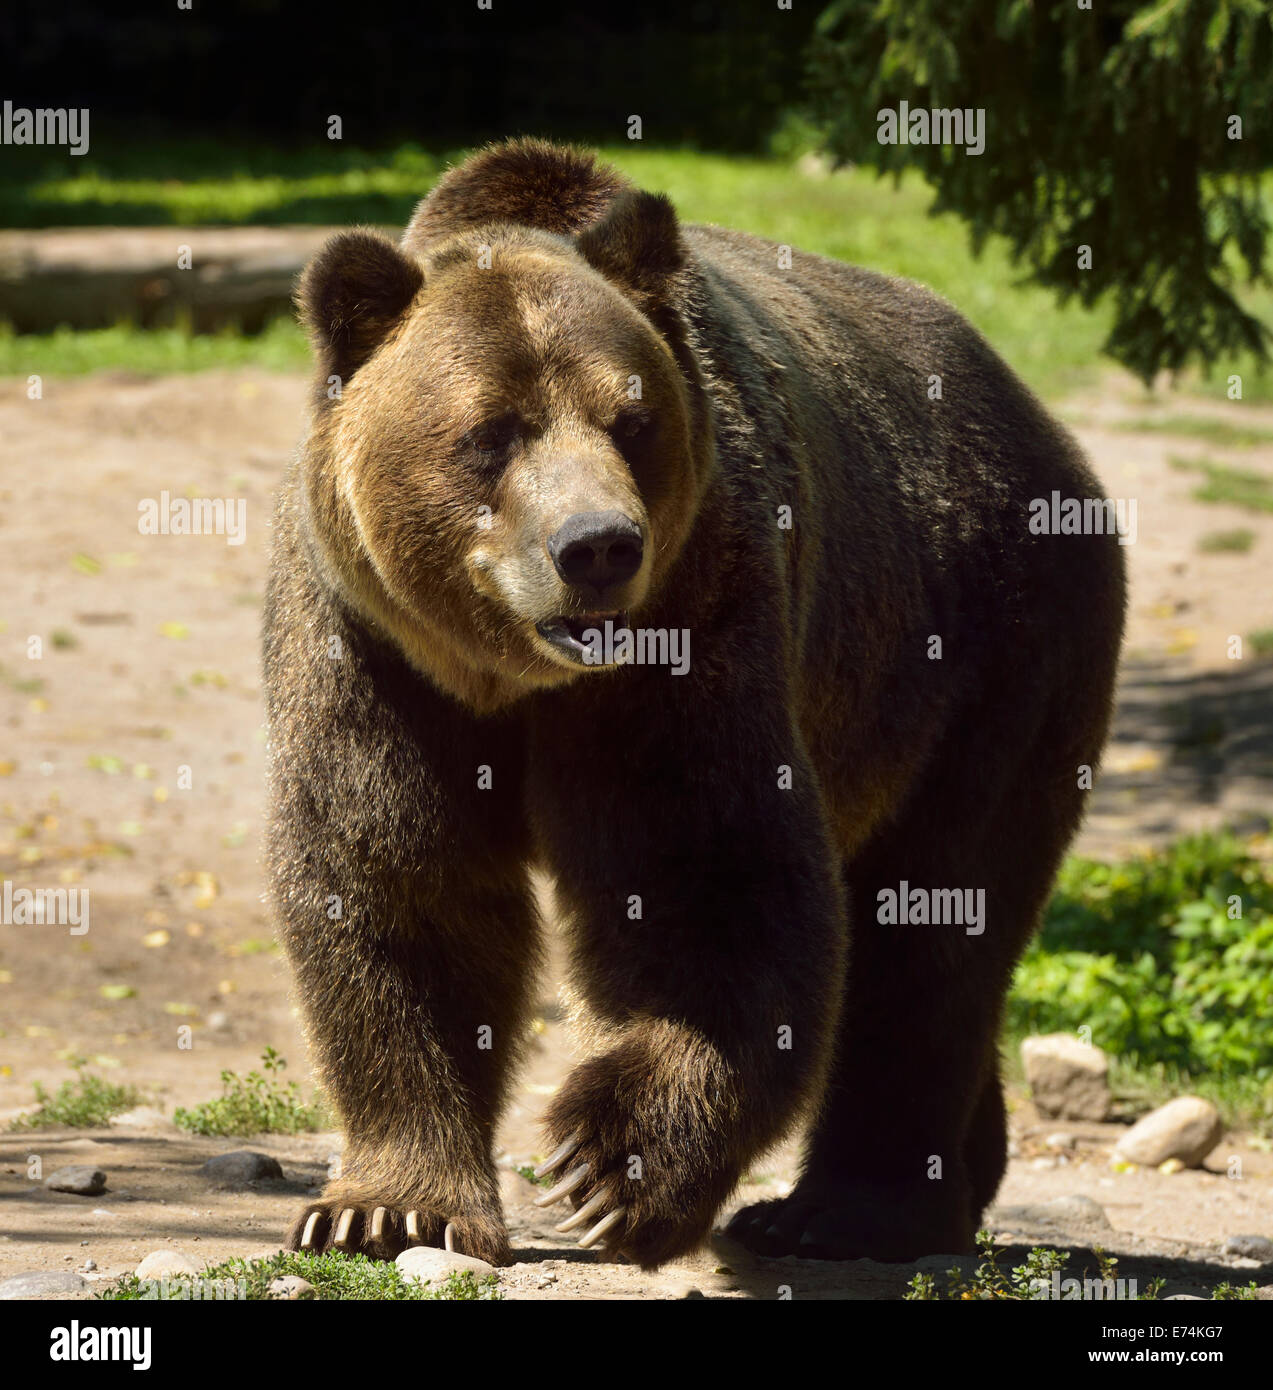 Mature Mainland Grizzly bear subspecies of brown bear walking on path at the Toronto Zoo - Stock Image